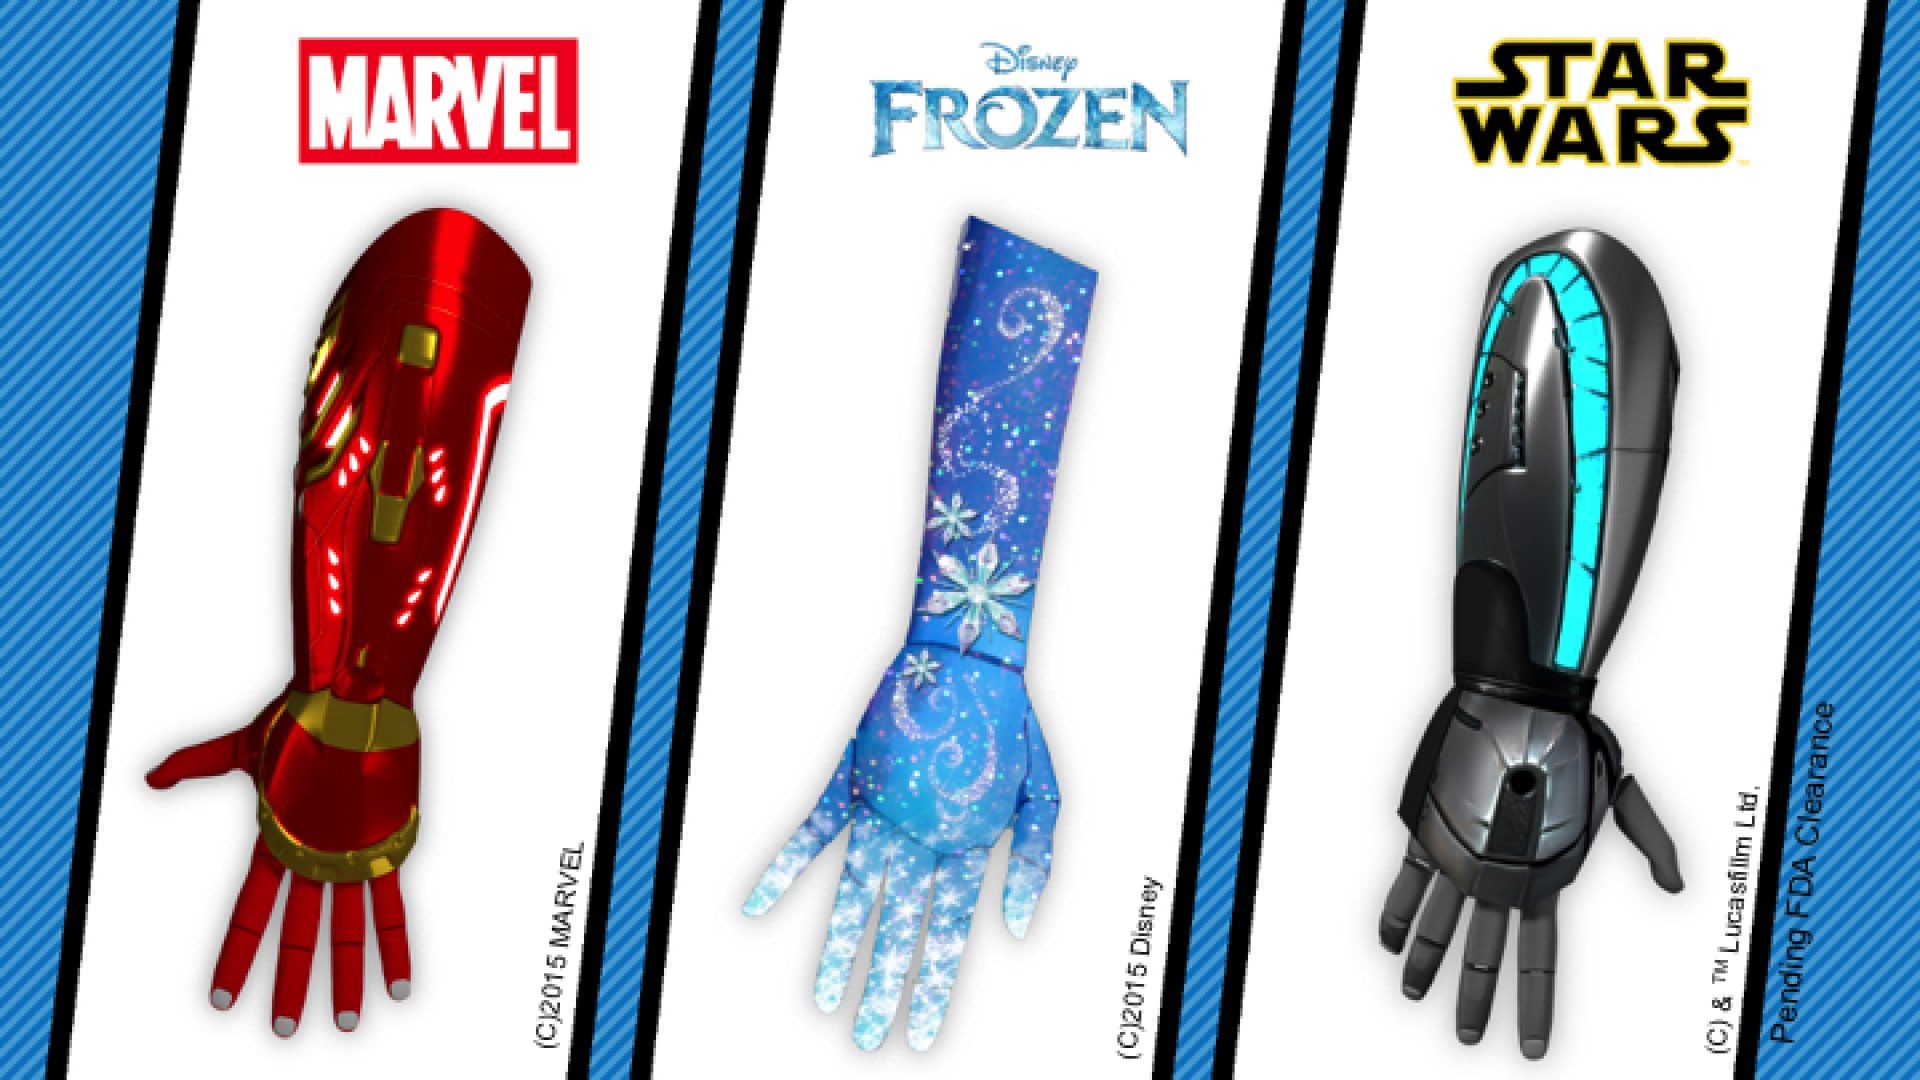 Three new prosthetic options licensed off Disney properties (Marvel, Frozen, and Star Wars)